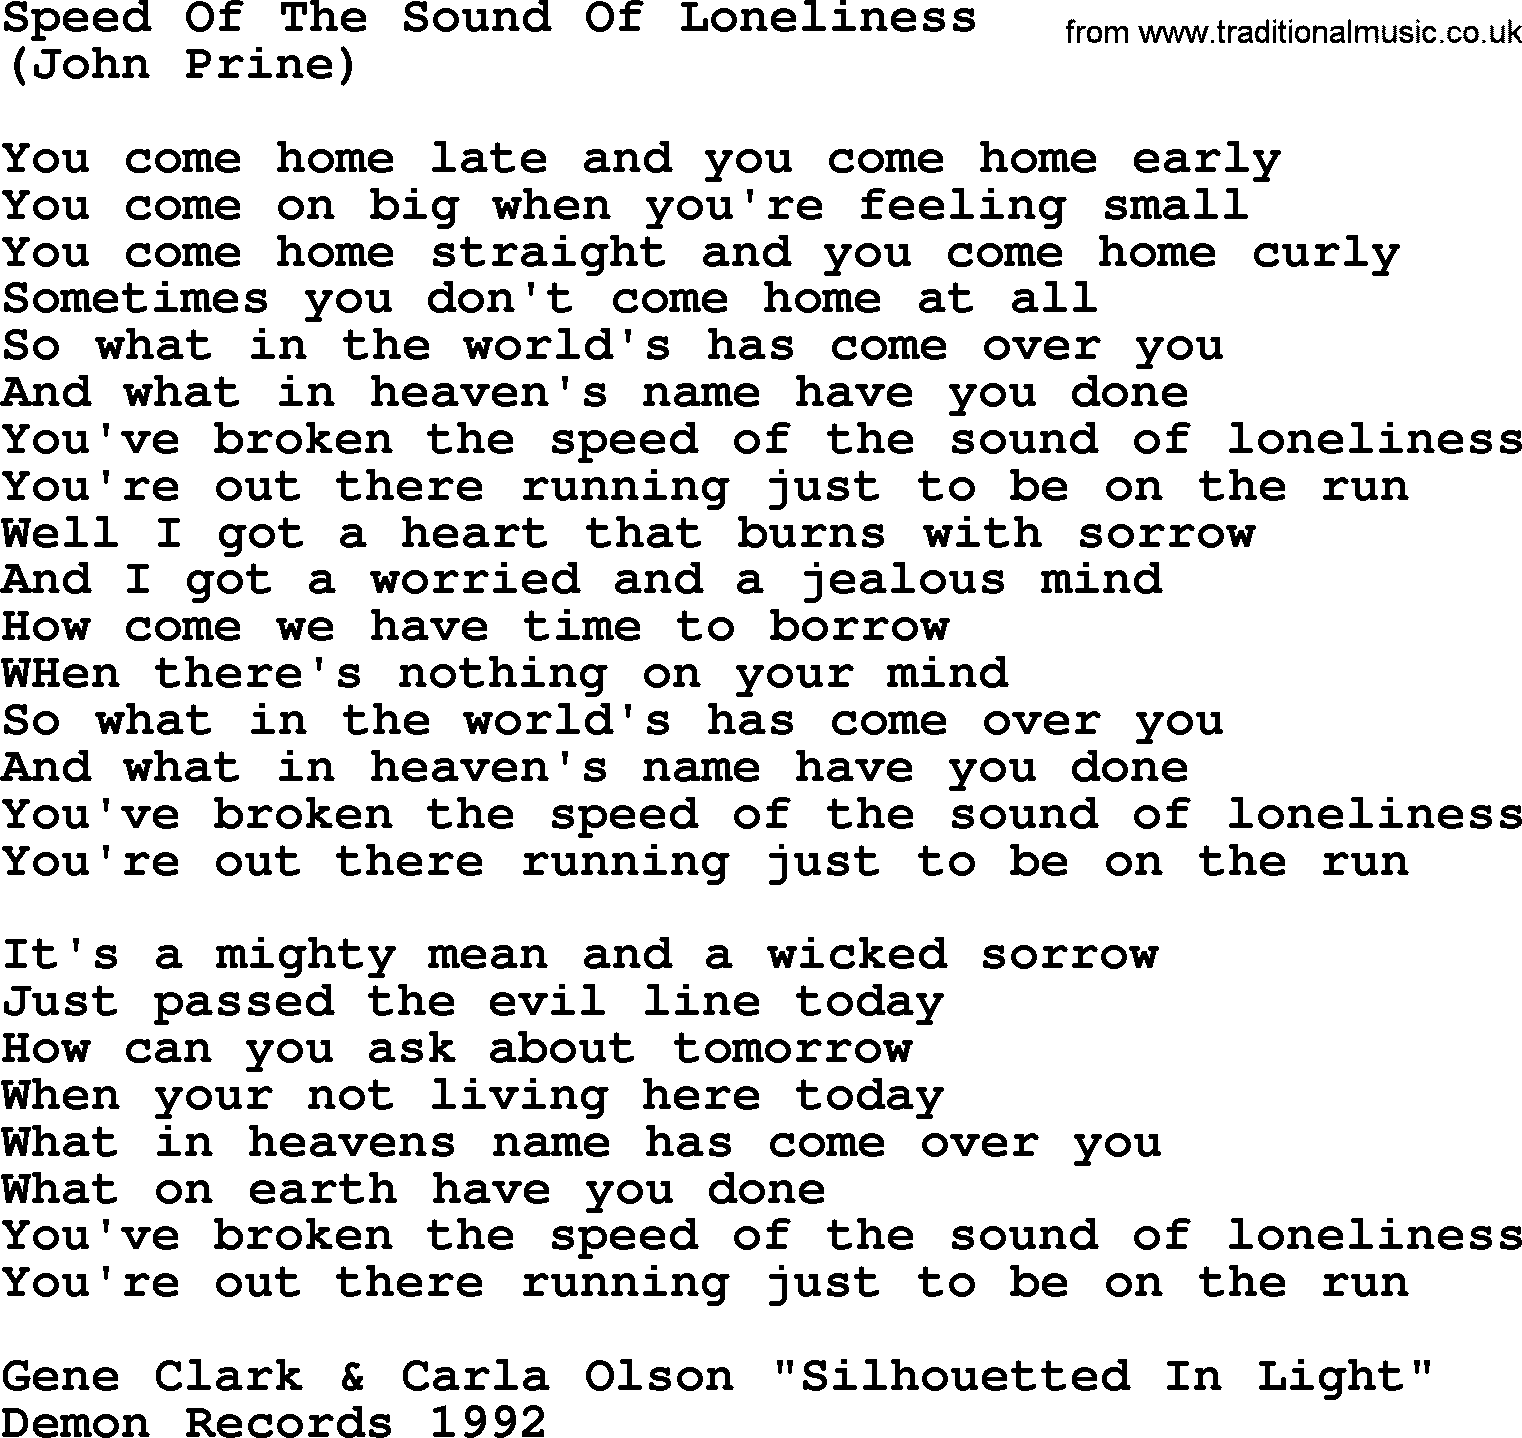 Speed Of The Sound Of Loneliness, by The Byrds - lyrics with pdf